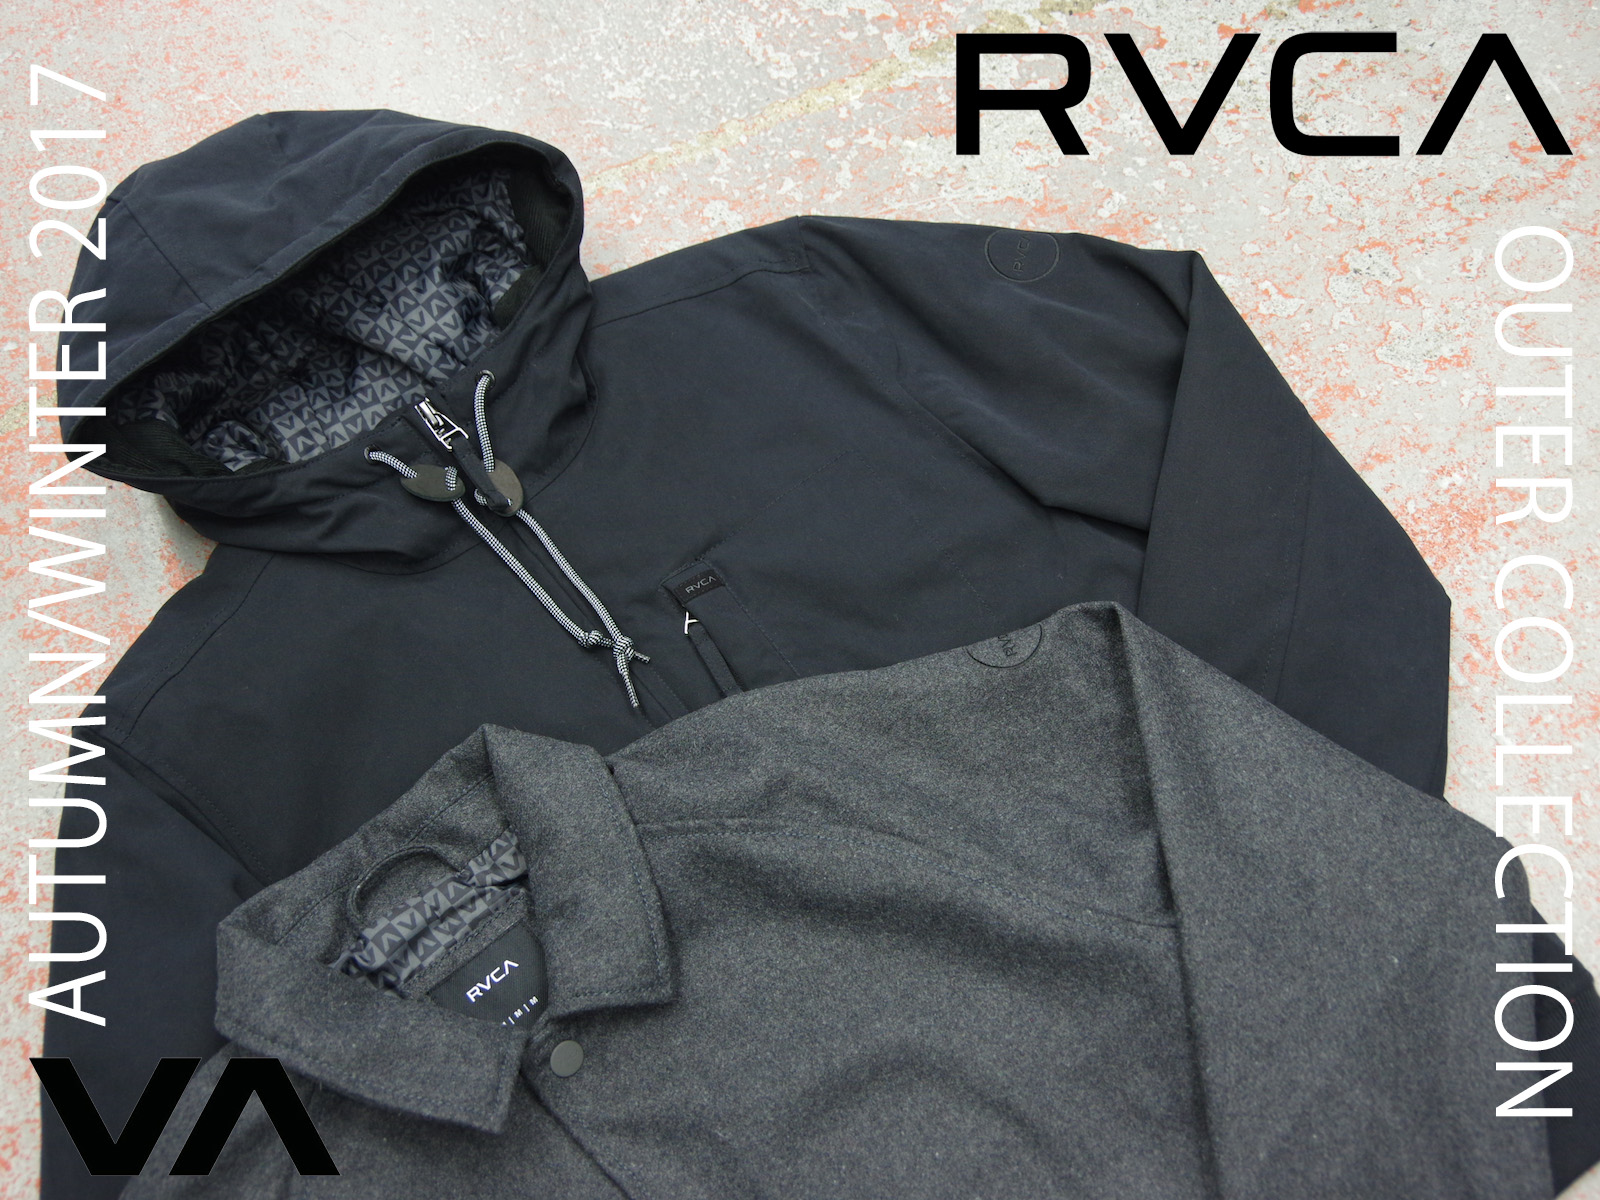 NEW ARRIVALS – RVCA AUTUMN/WINTER 2017 OUTER COLLECTION